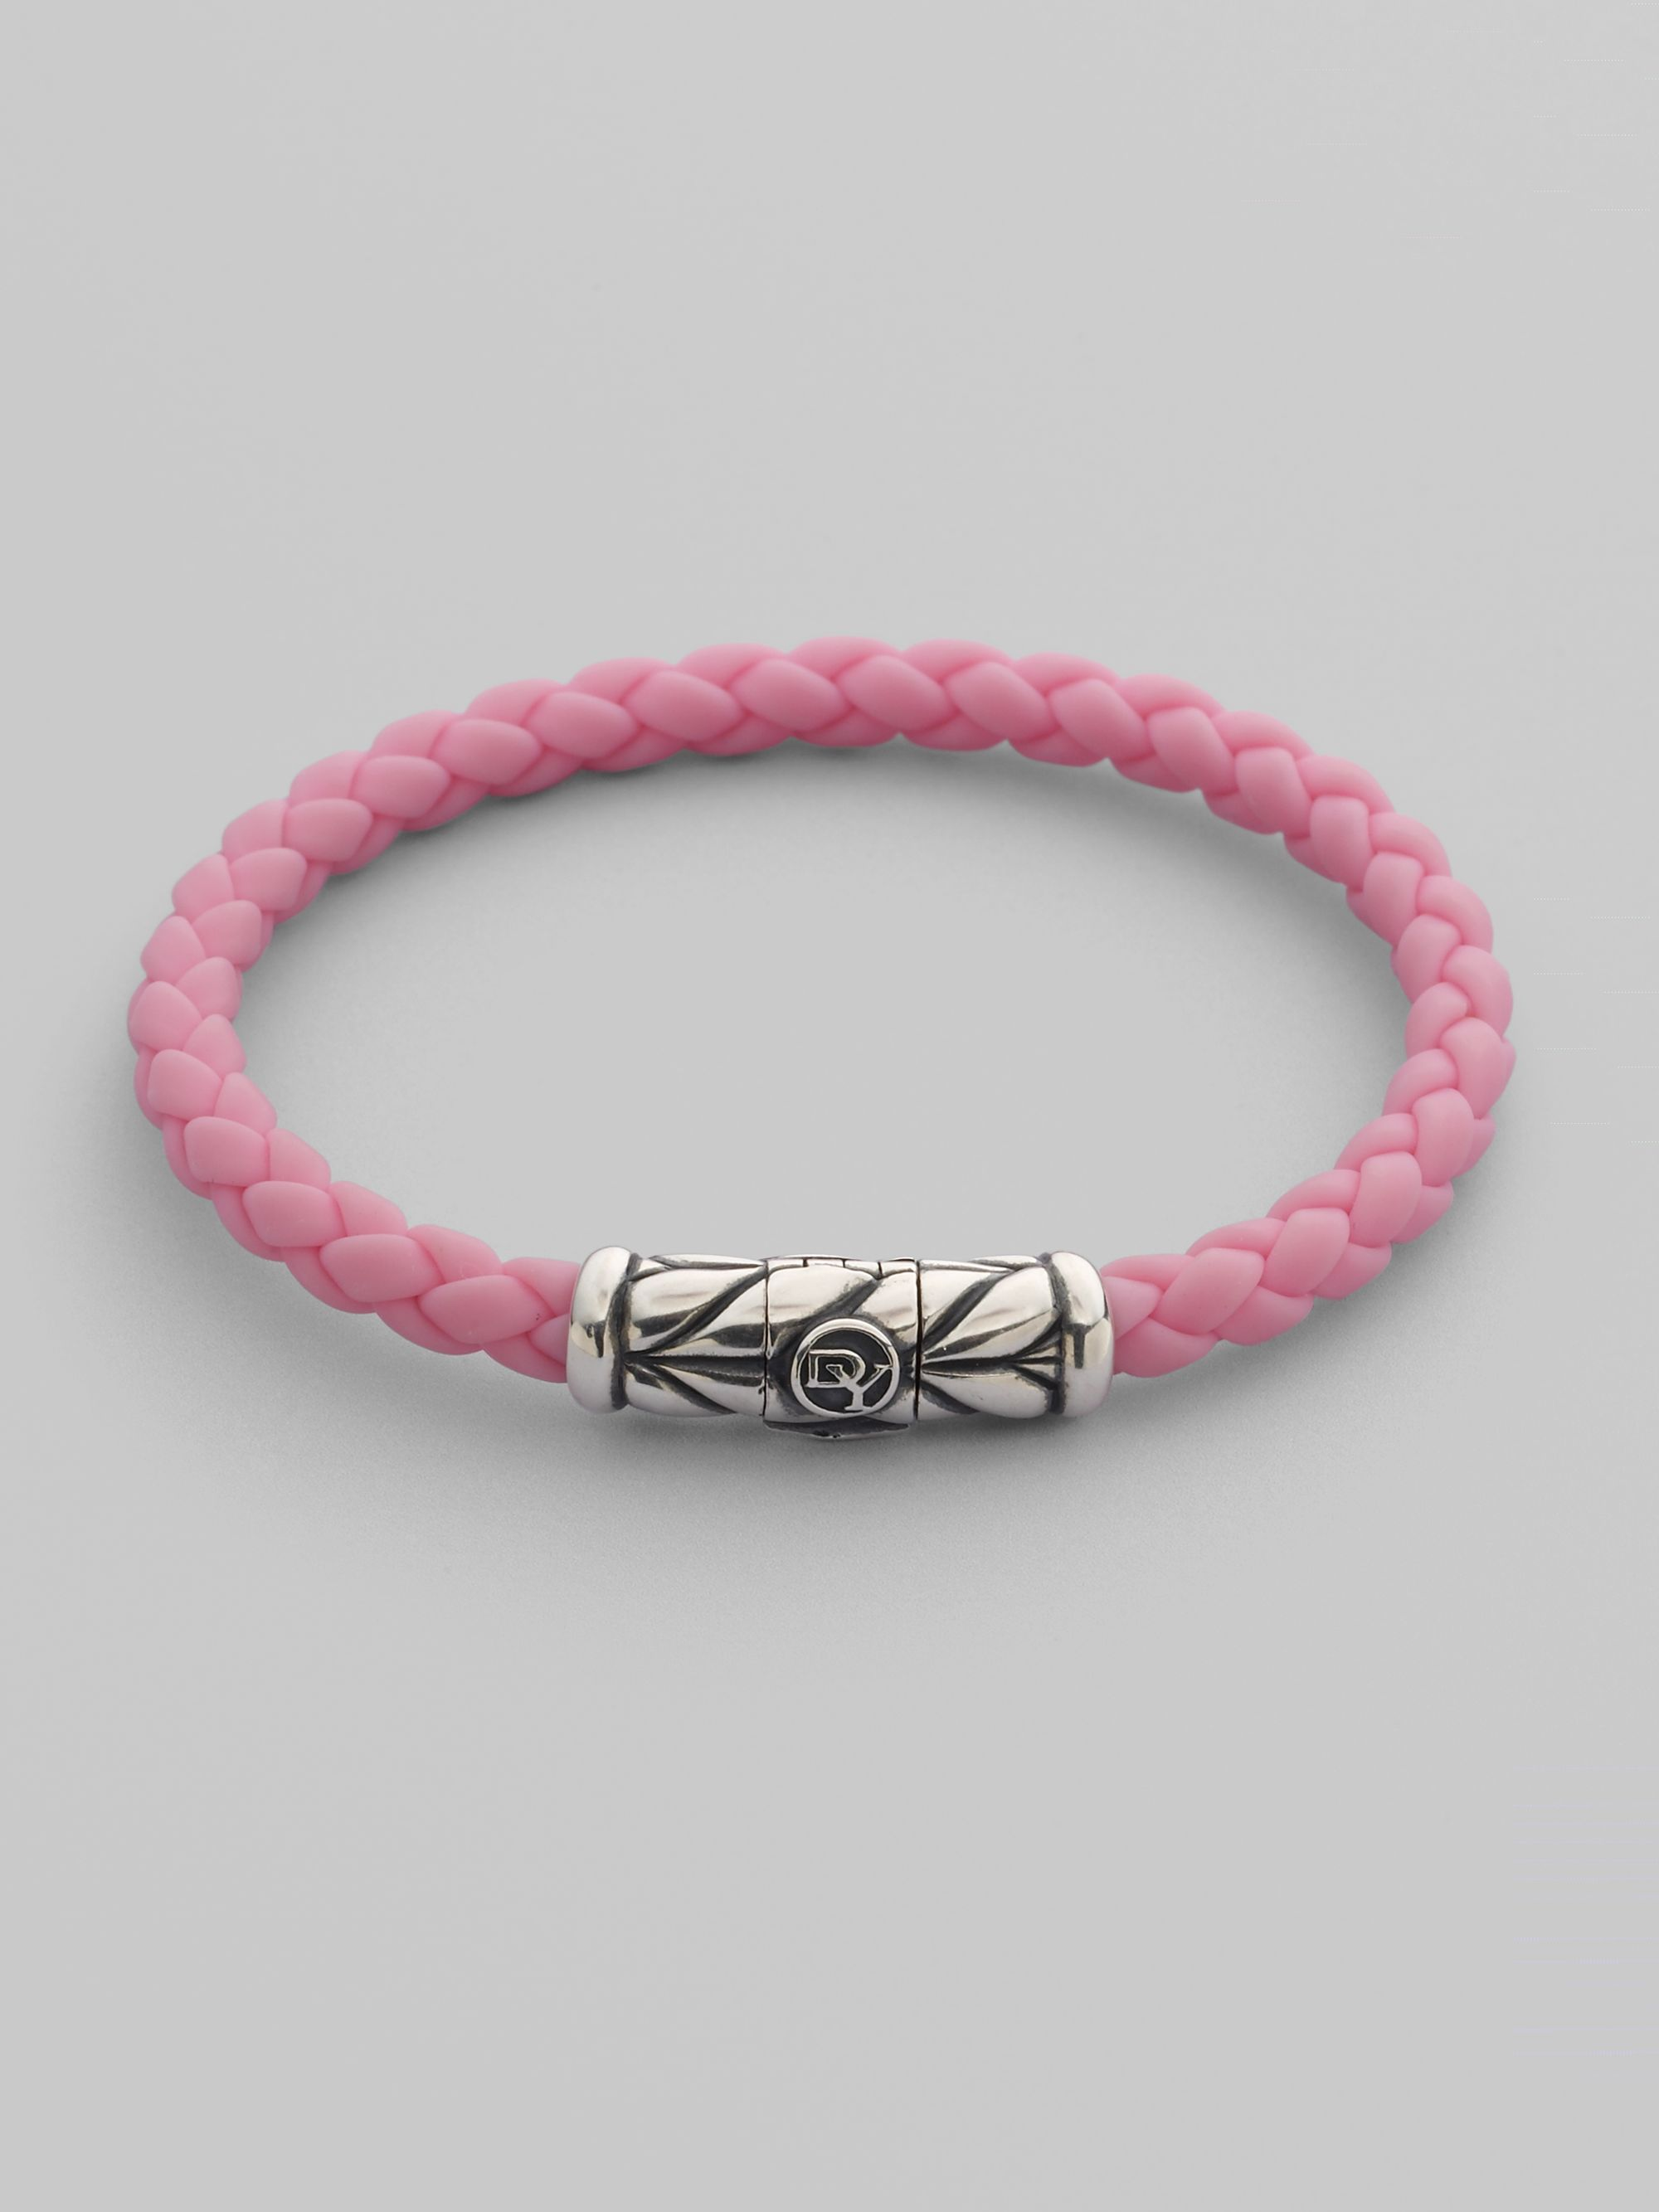 Remarkable, this pink breast cancer band bracelets version